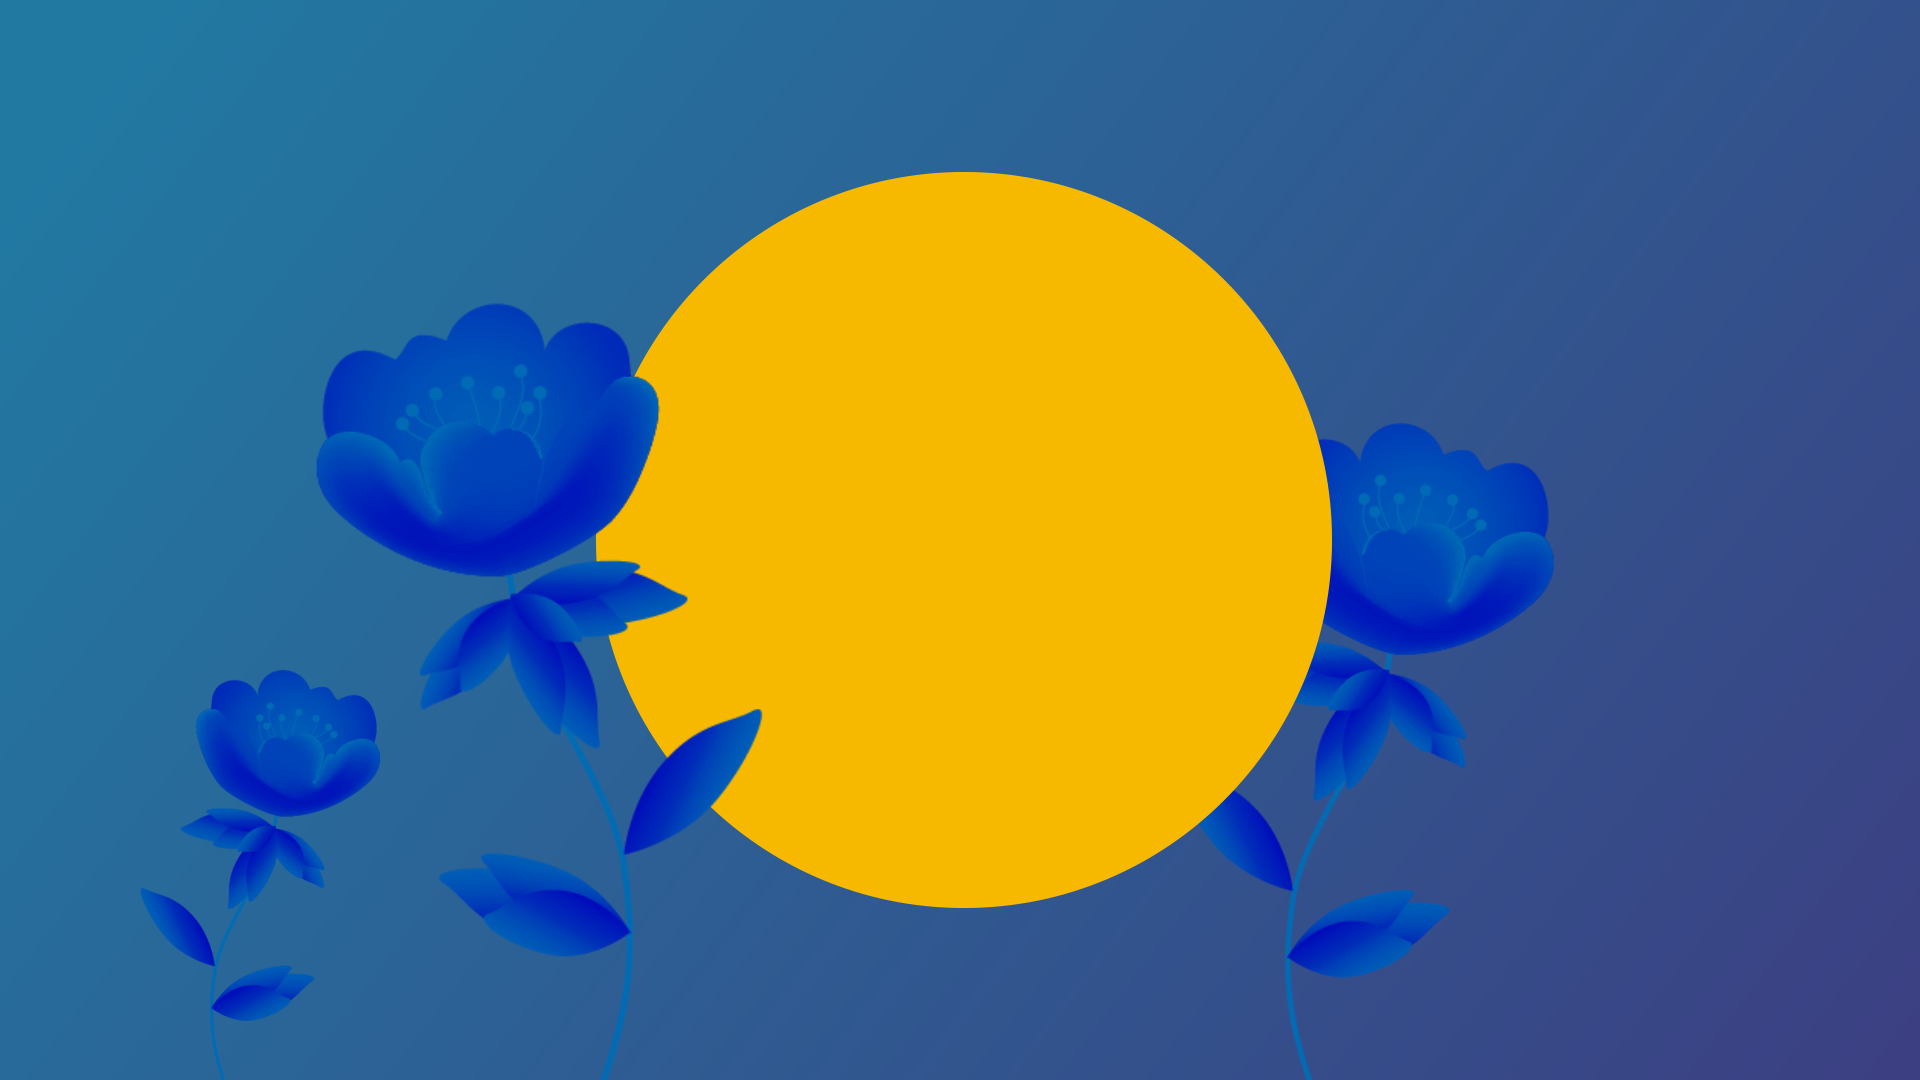 Lead nurturing, inner circle of digital marketing, yellow circle on blue background with growing blue flowers.